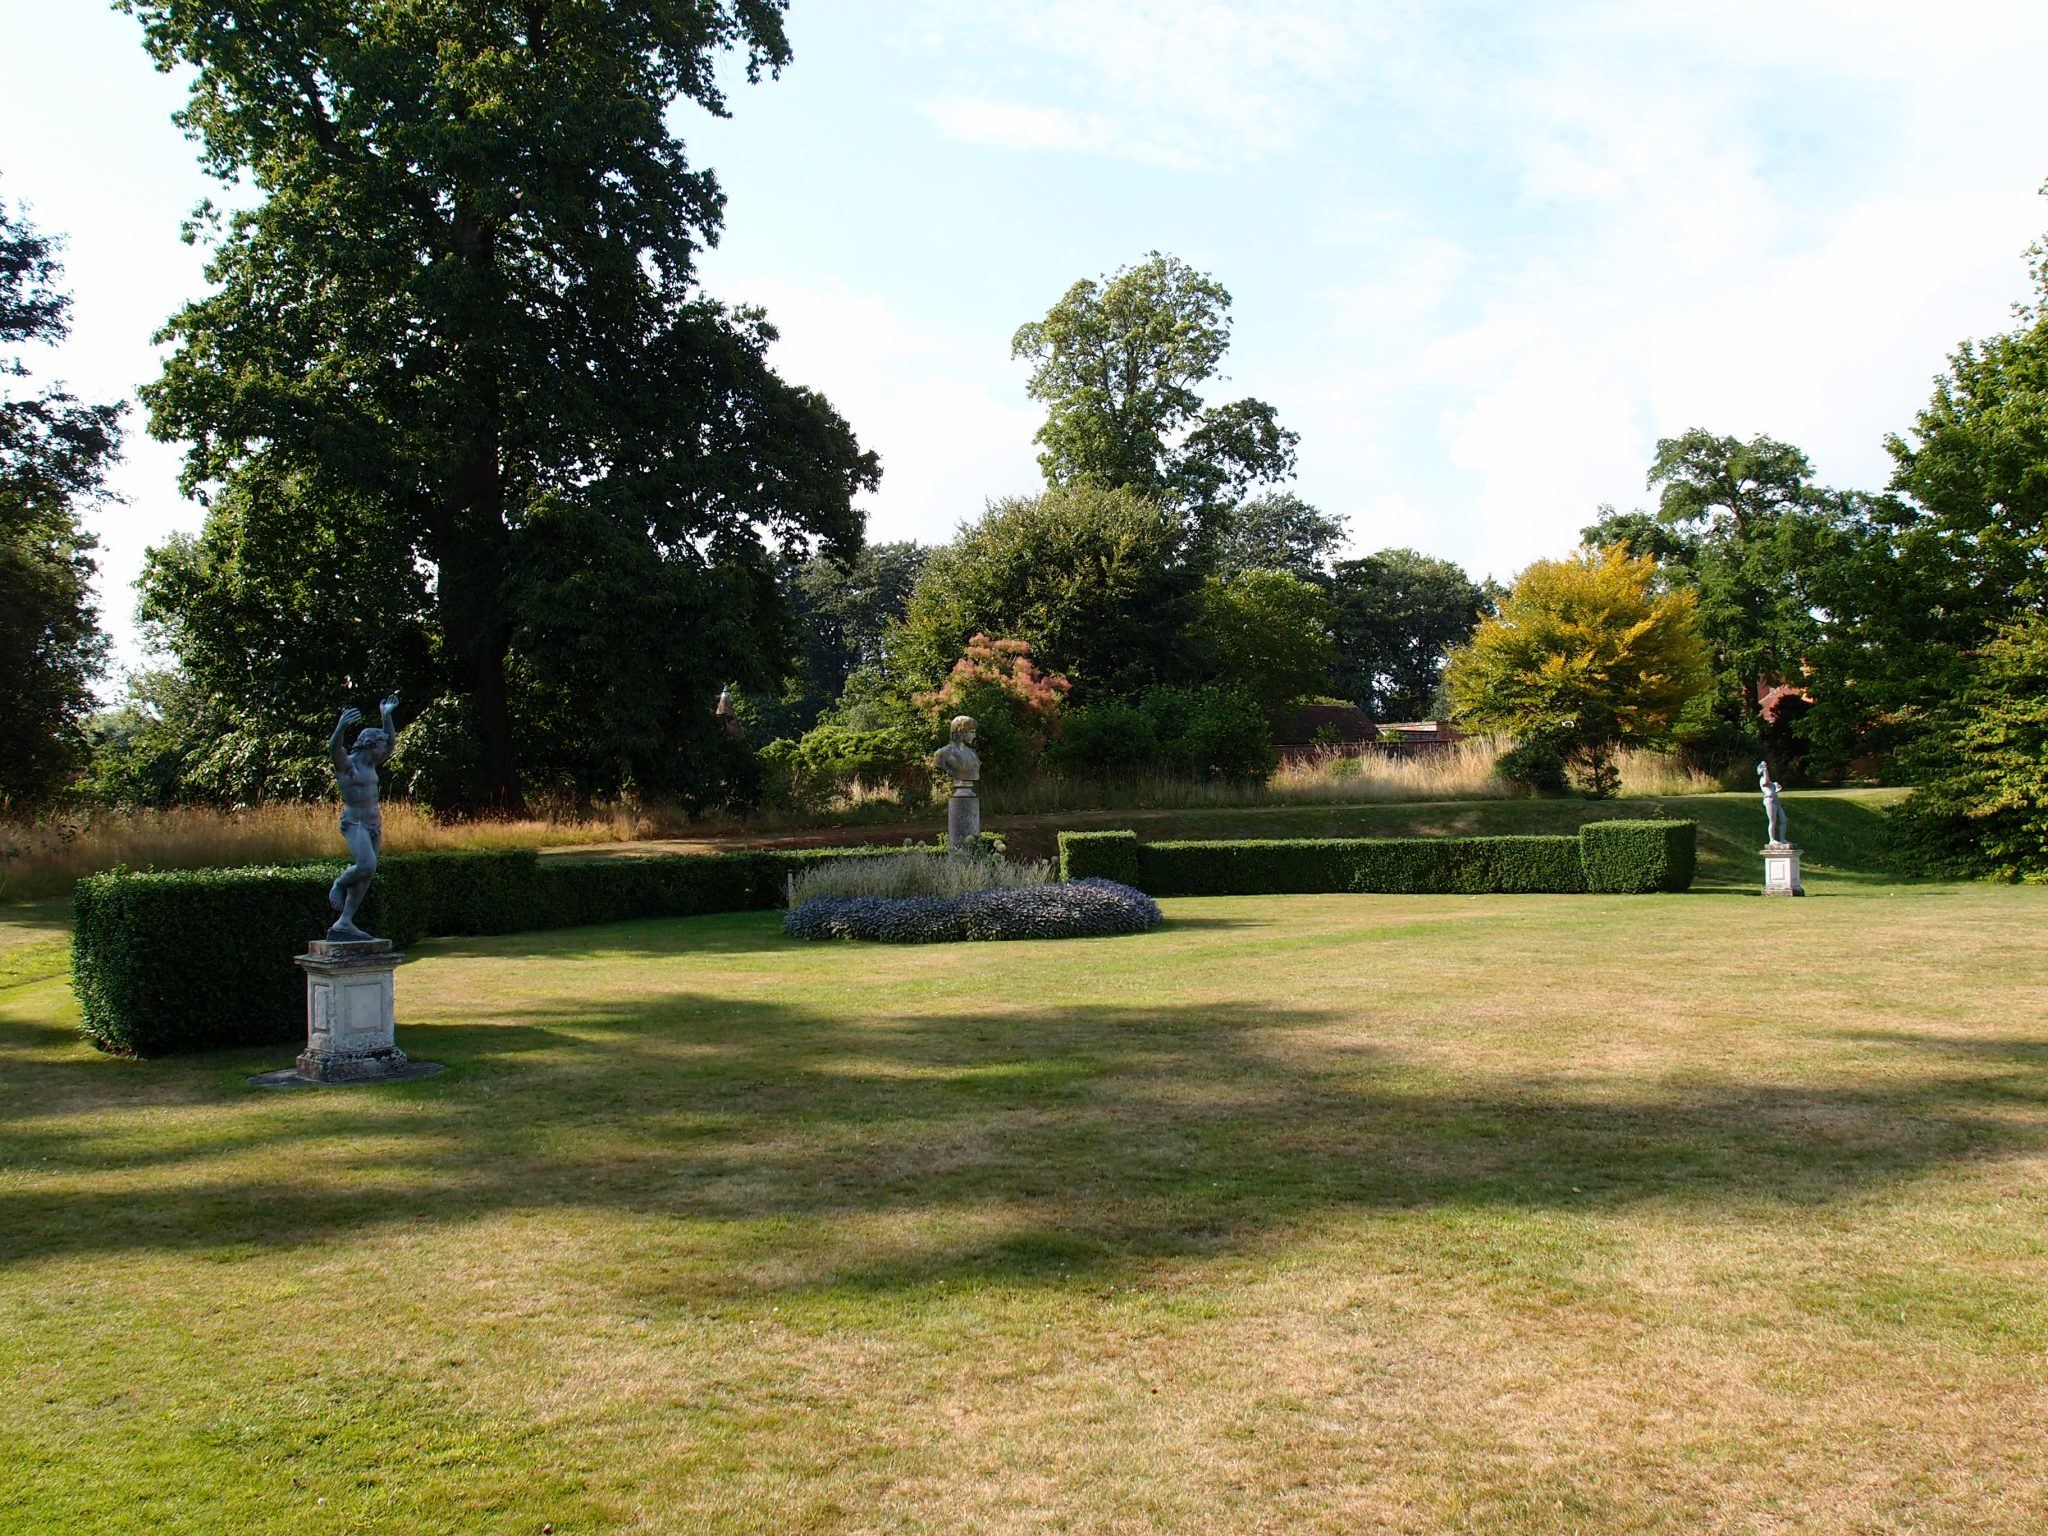 We hung a left, onto the Tennis Lawn, where Godinton's greatest concentration of sculptures is displayed.